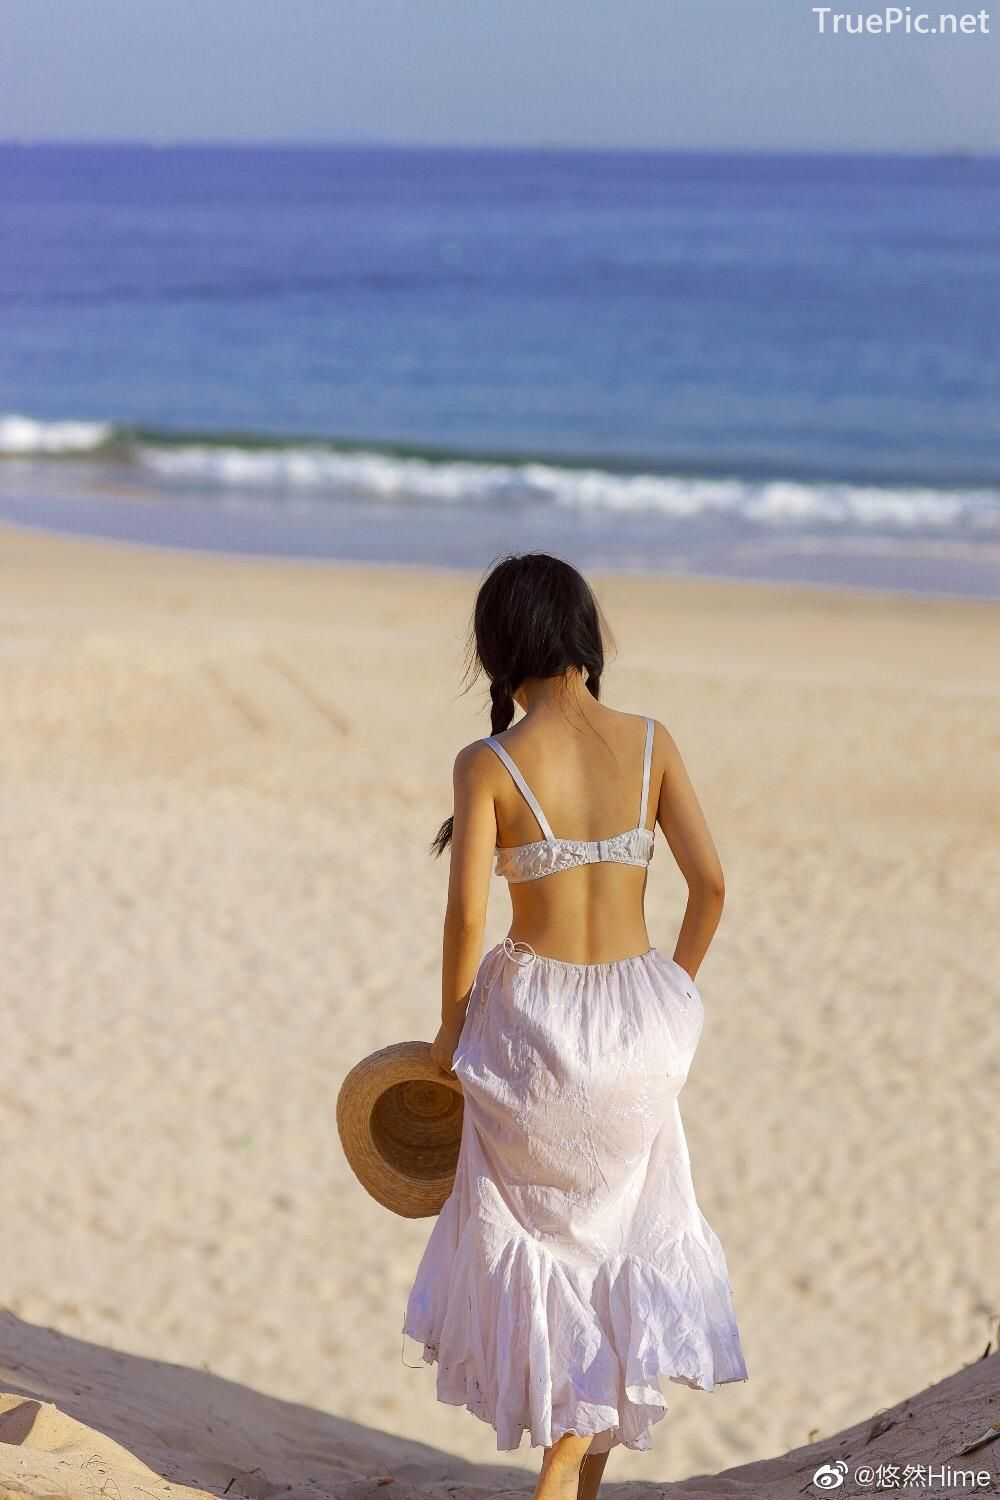 Chinese bautiful angel - Stay with you on a beautiful beach - TruePic.net - Picture 2